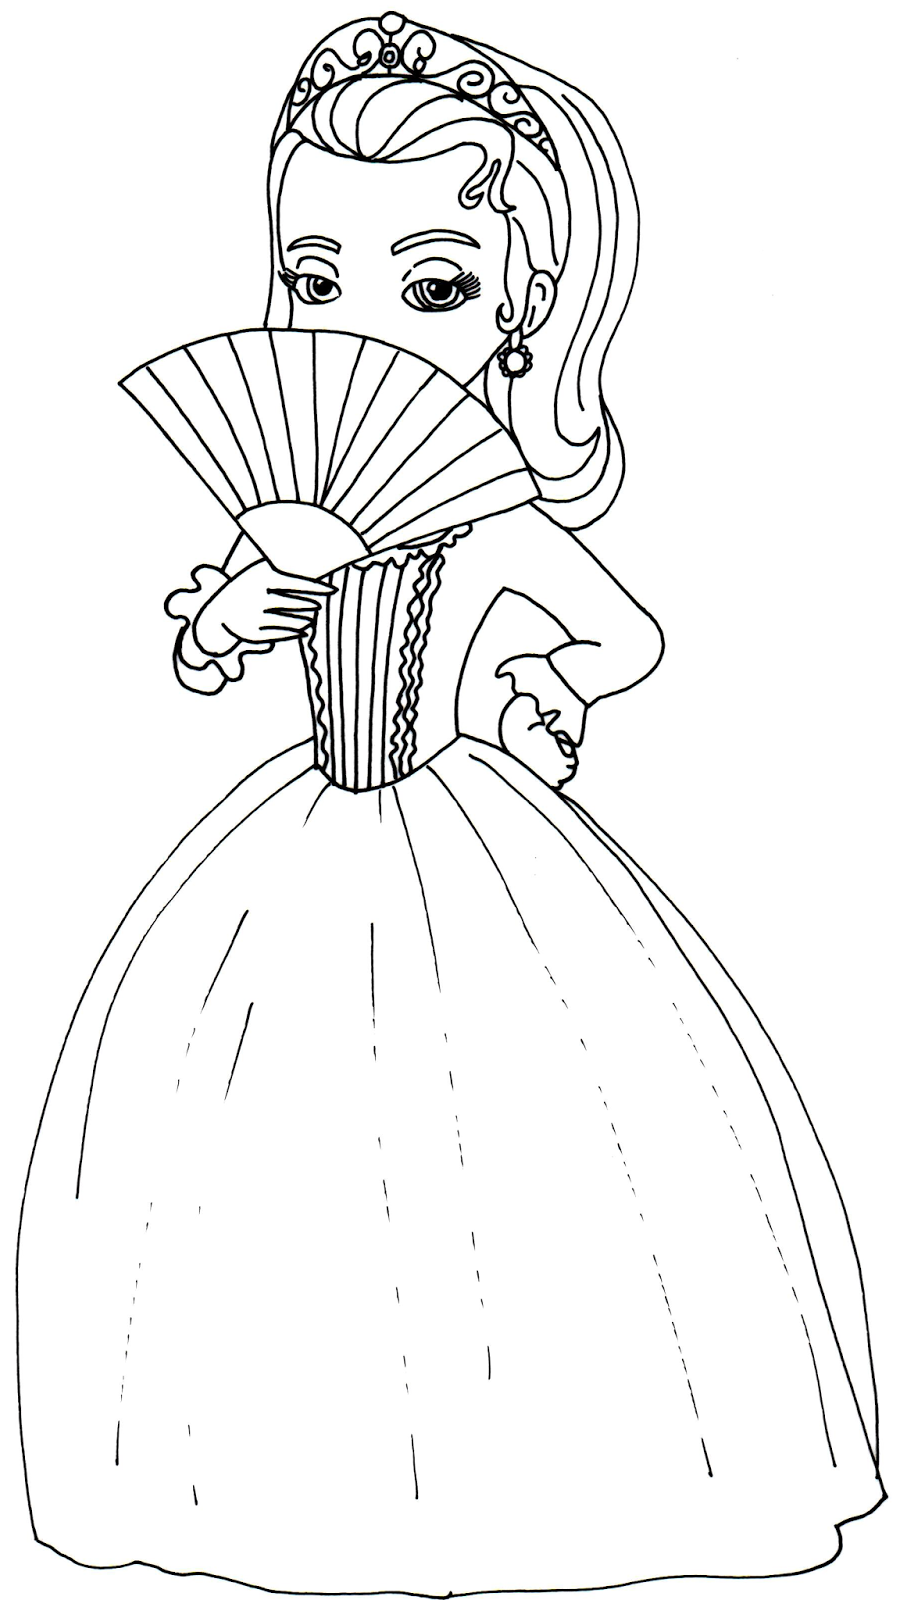 Sofia the first coloring pages princess amber sofia the for Sophie the first coloring pages